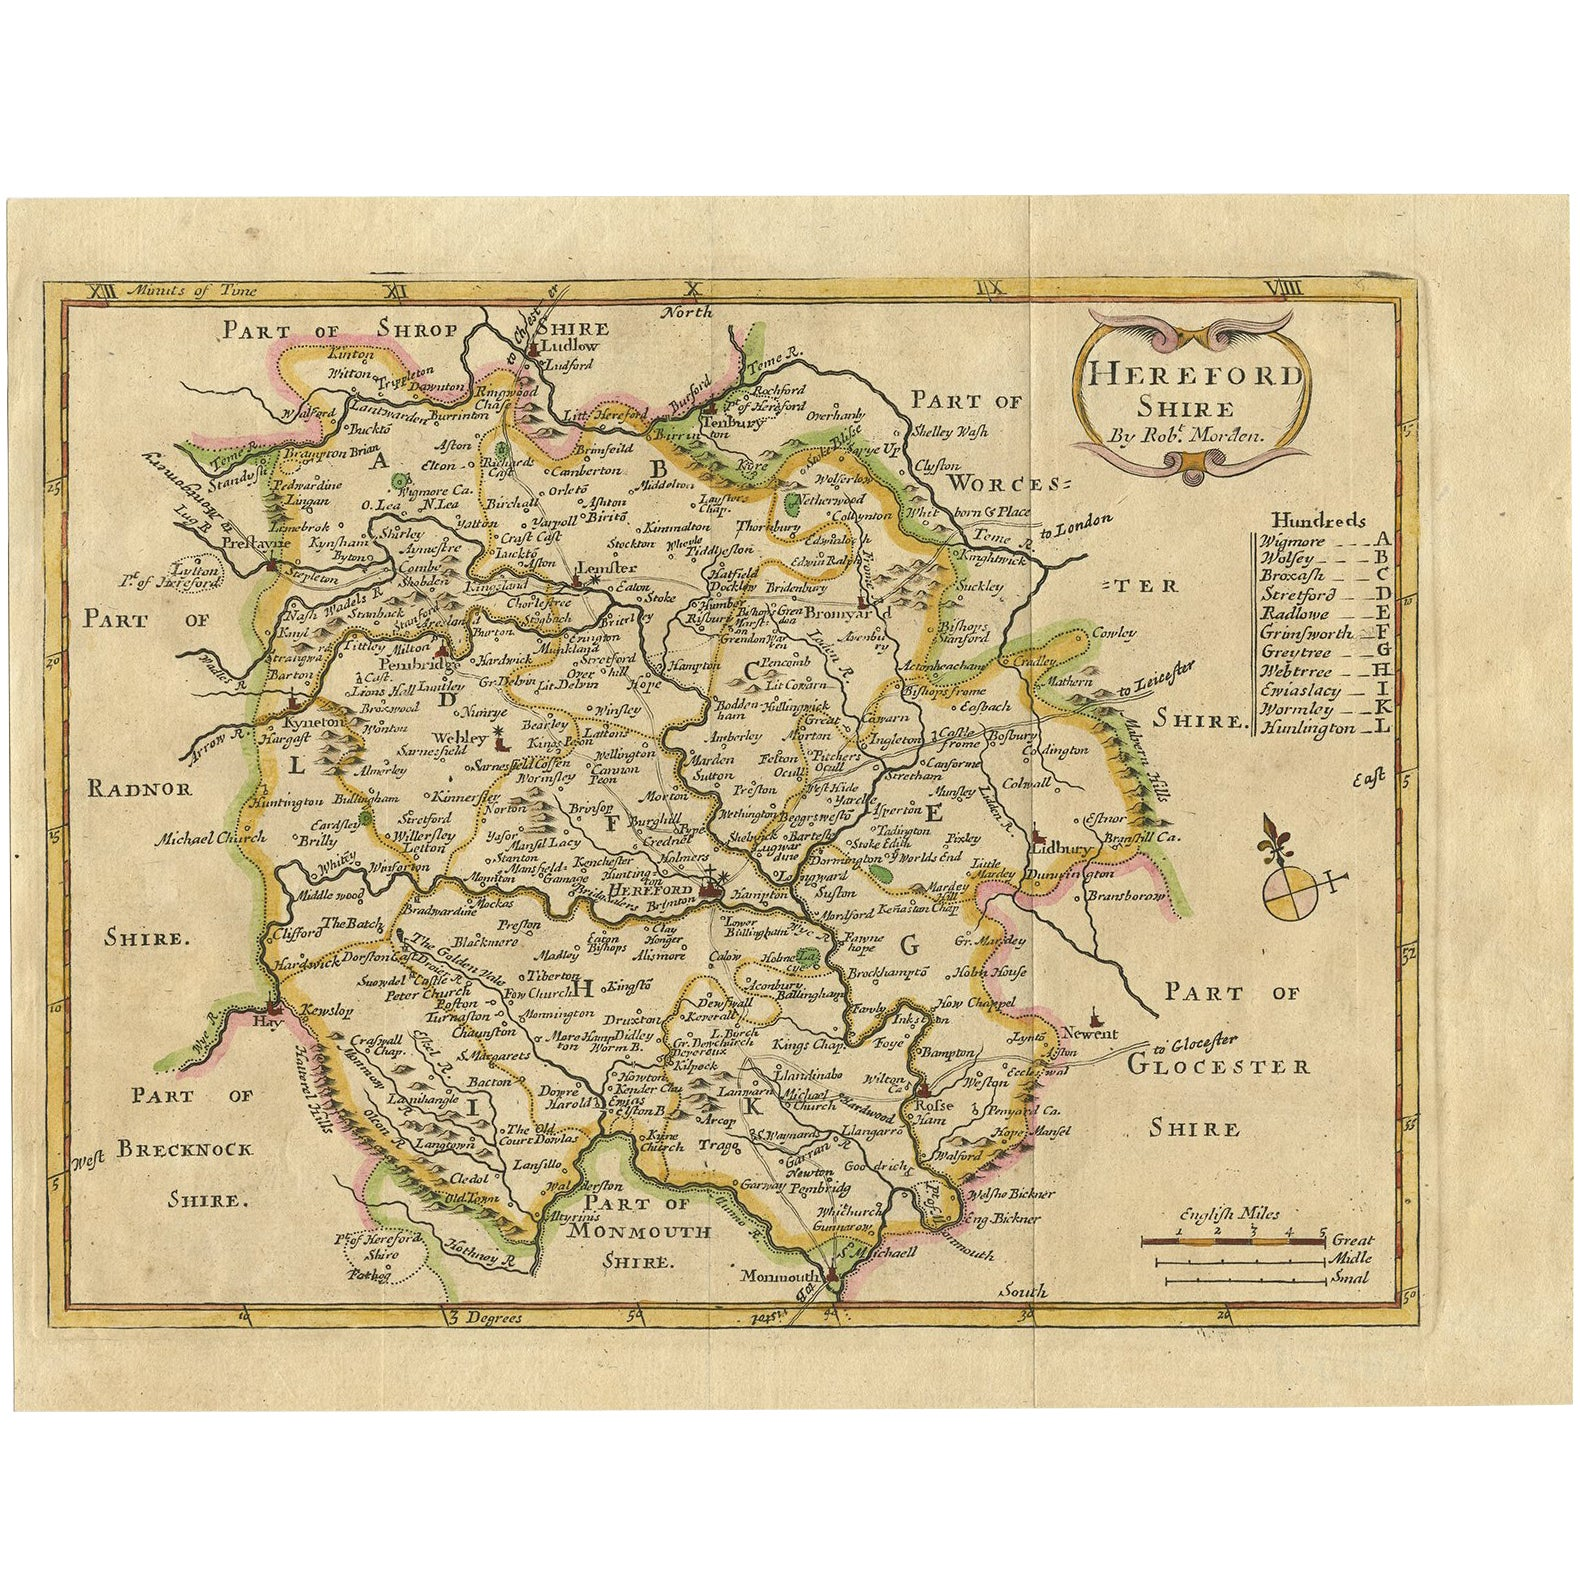 Antique Map of Herefordshire 'England' by R. Morden, 1708